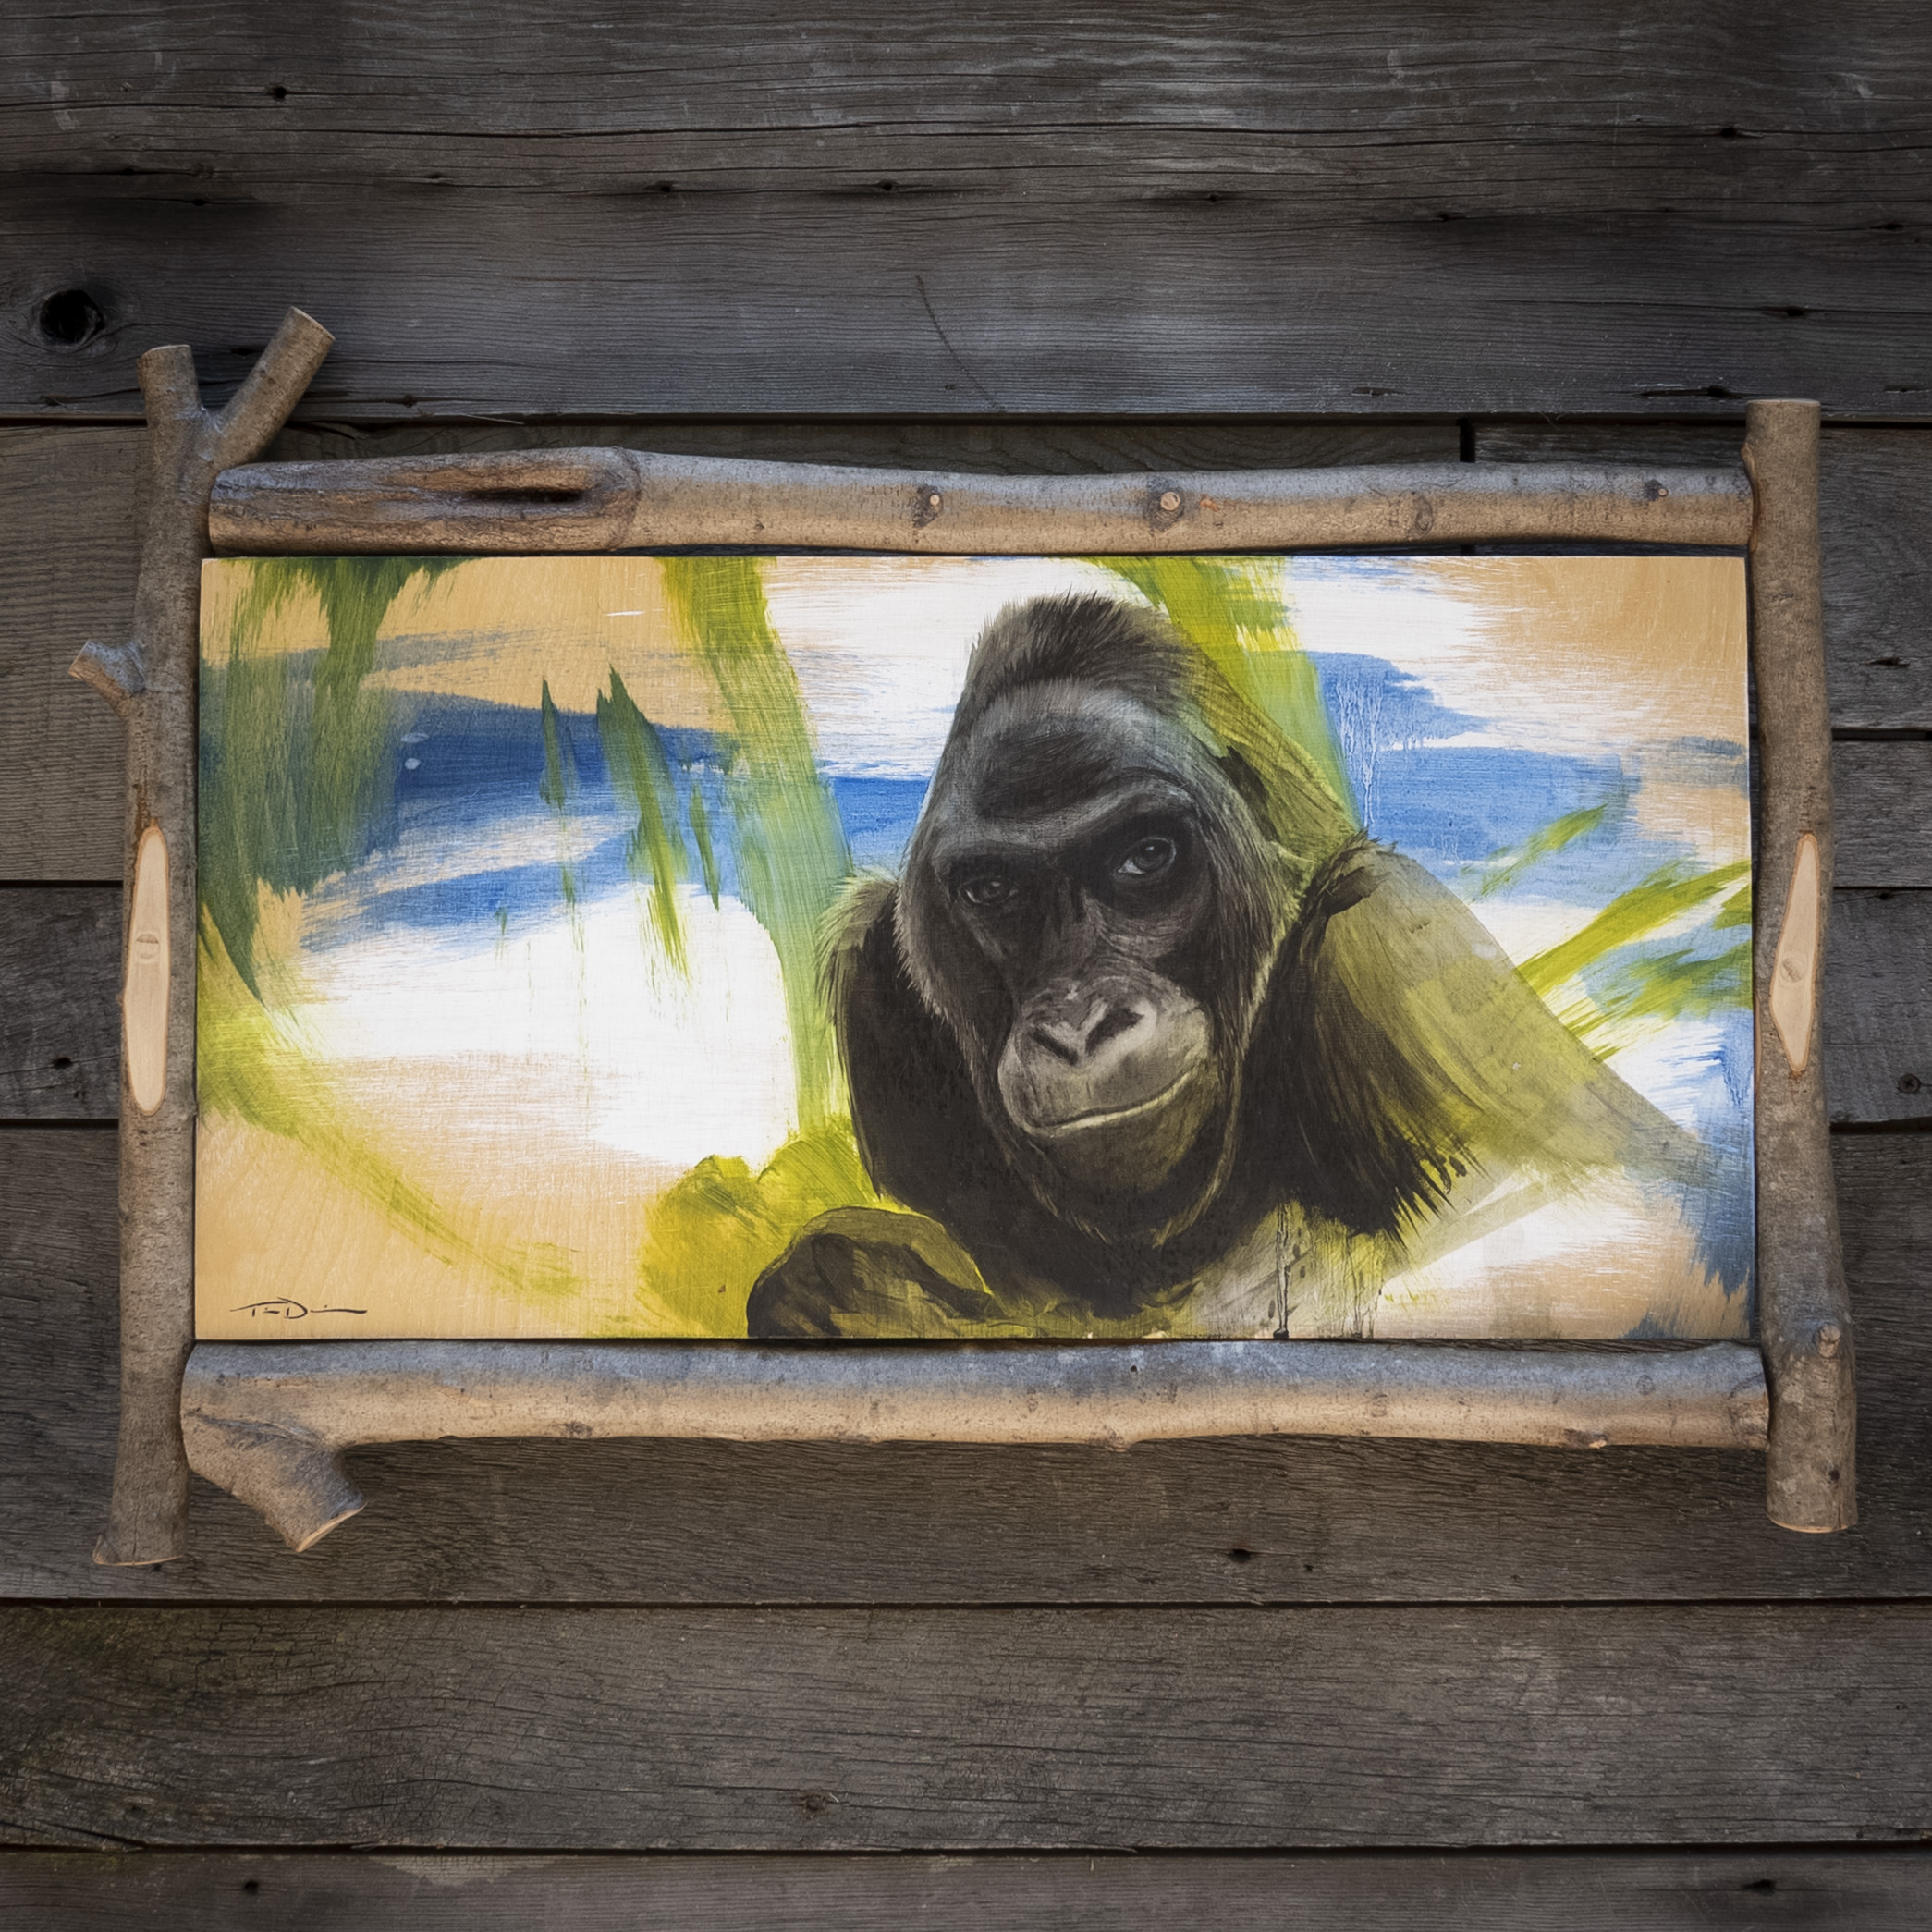 Colo - Original oil painting by wildlife artist Timothy Tim Davison of the Davison Art Company featuring Colo the gorilla, the first western lowland gorilla born in captivity. Also, the oldest gorilla on record. Painted shortly after her death in 2017. Framed in a custom driftwood frame.